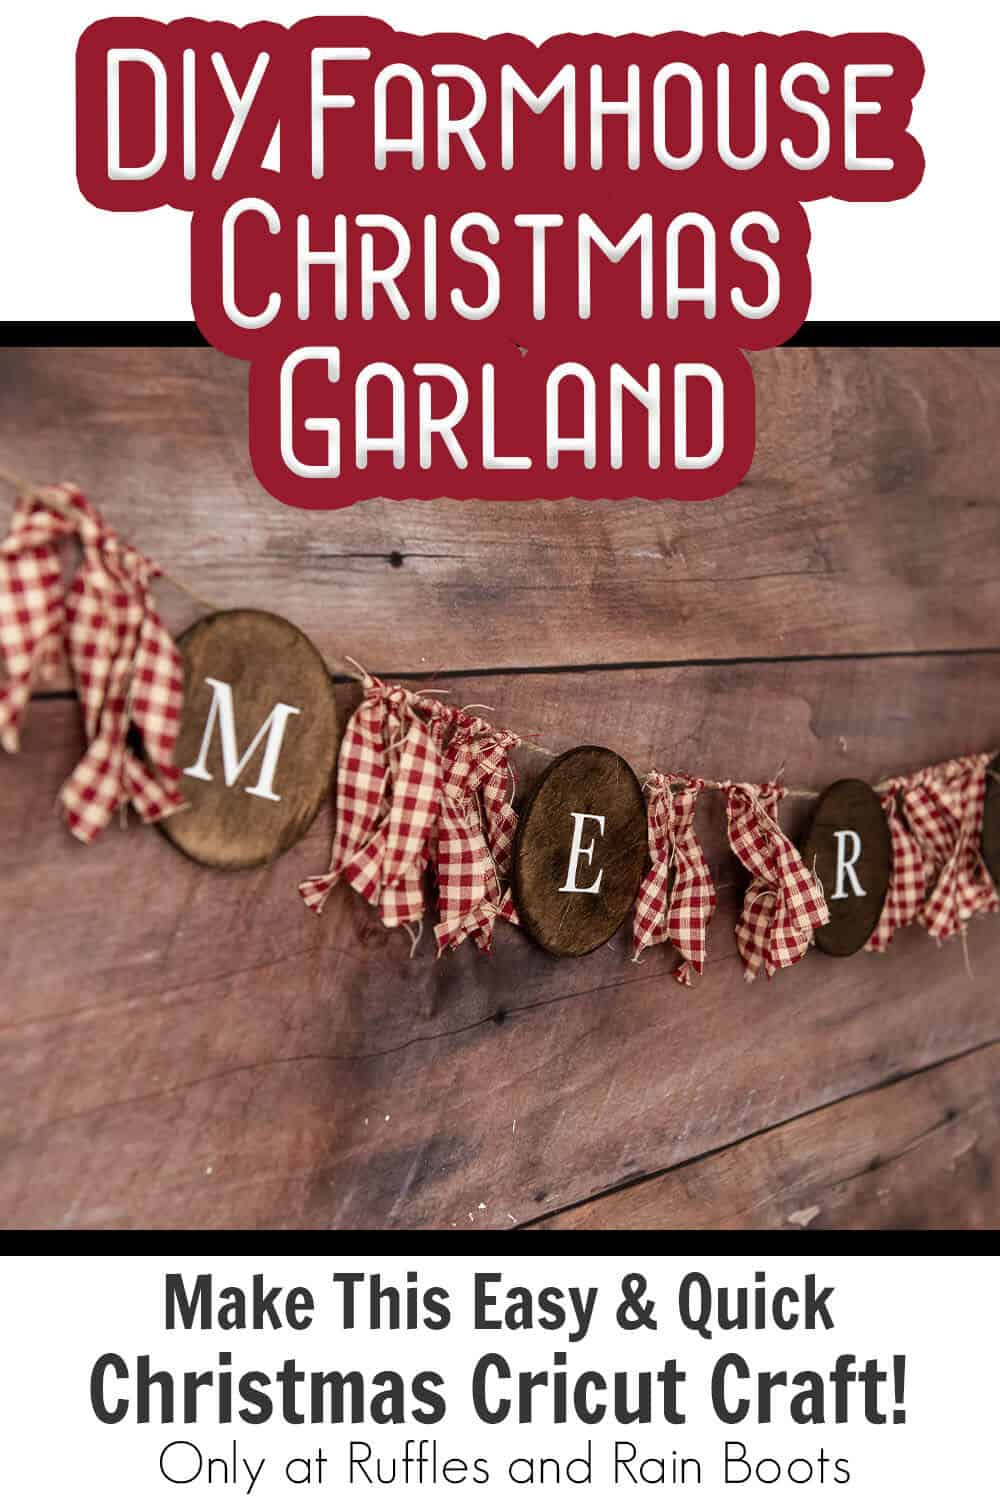 easy farmhouse christmas garland cricut craft with text which reads diy farmhouse christmas garland make this easy & quick christmas cricut craft!